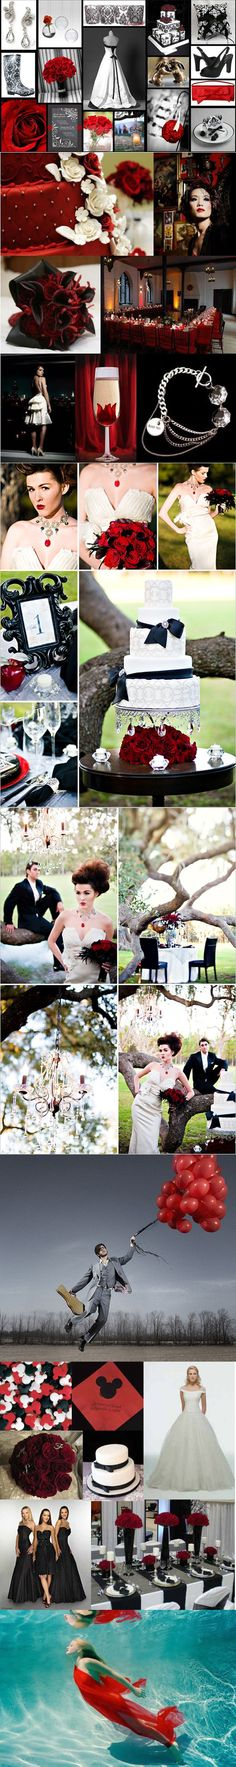 Black, red, and white wedding ideas